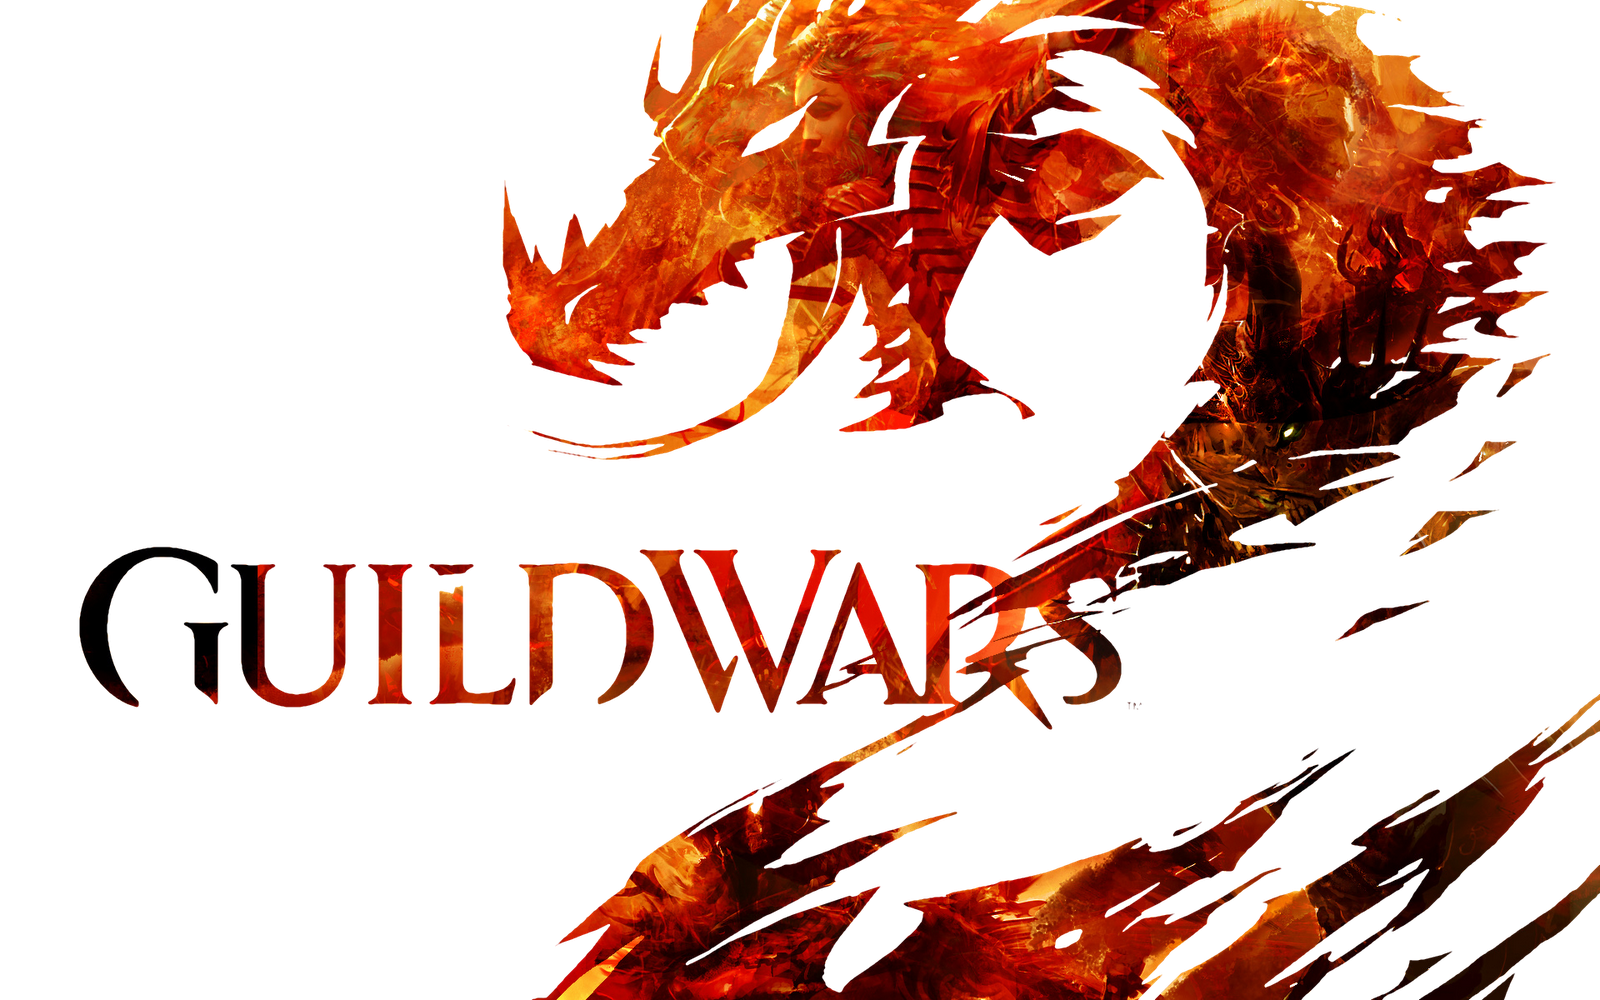 engineer guildwars2com - photo #4